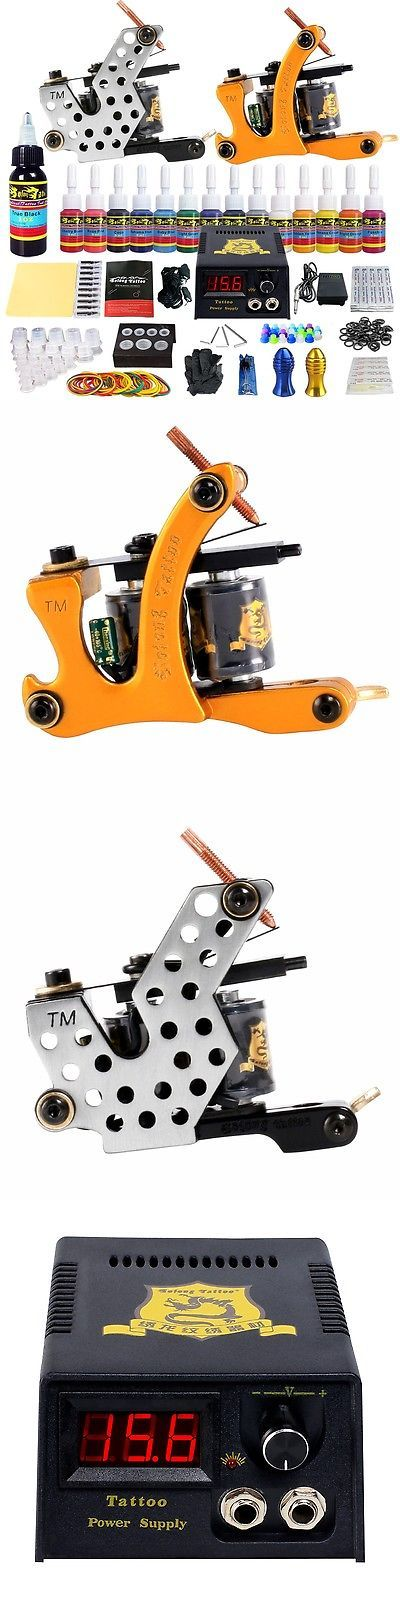 Tattoo Complete Kits: Solong Tattoo Complete Tattoo Kit Professional Tattoo Machine Power Boxtk212 BUY IT NOW ONLY: $31.64